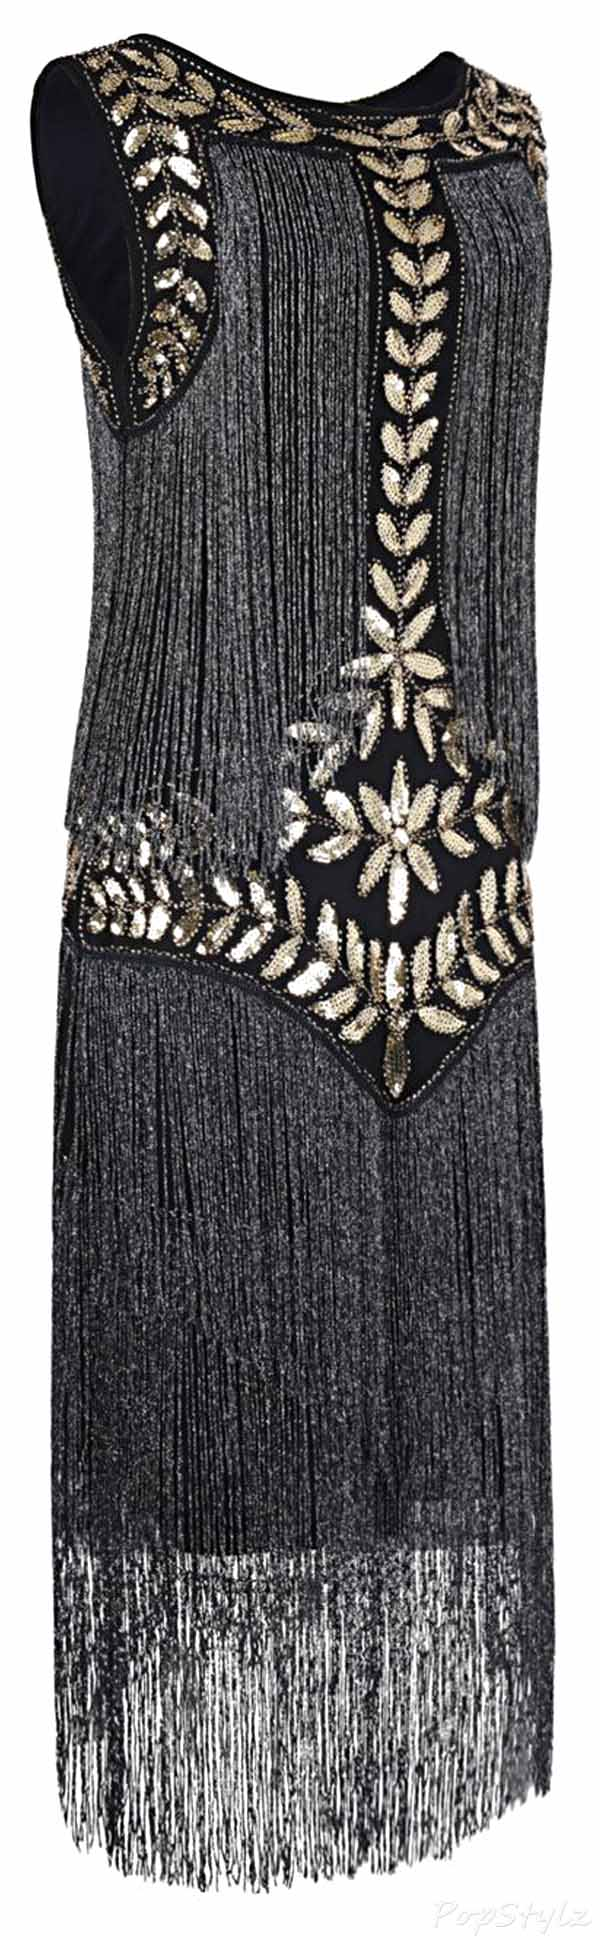 PrettyGuide 1920s Vintage Sequin Full Fringed Flapper Dress